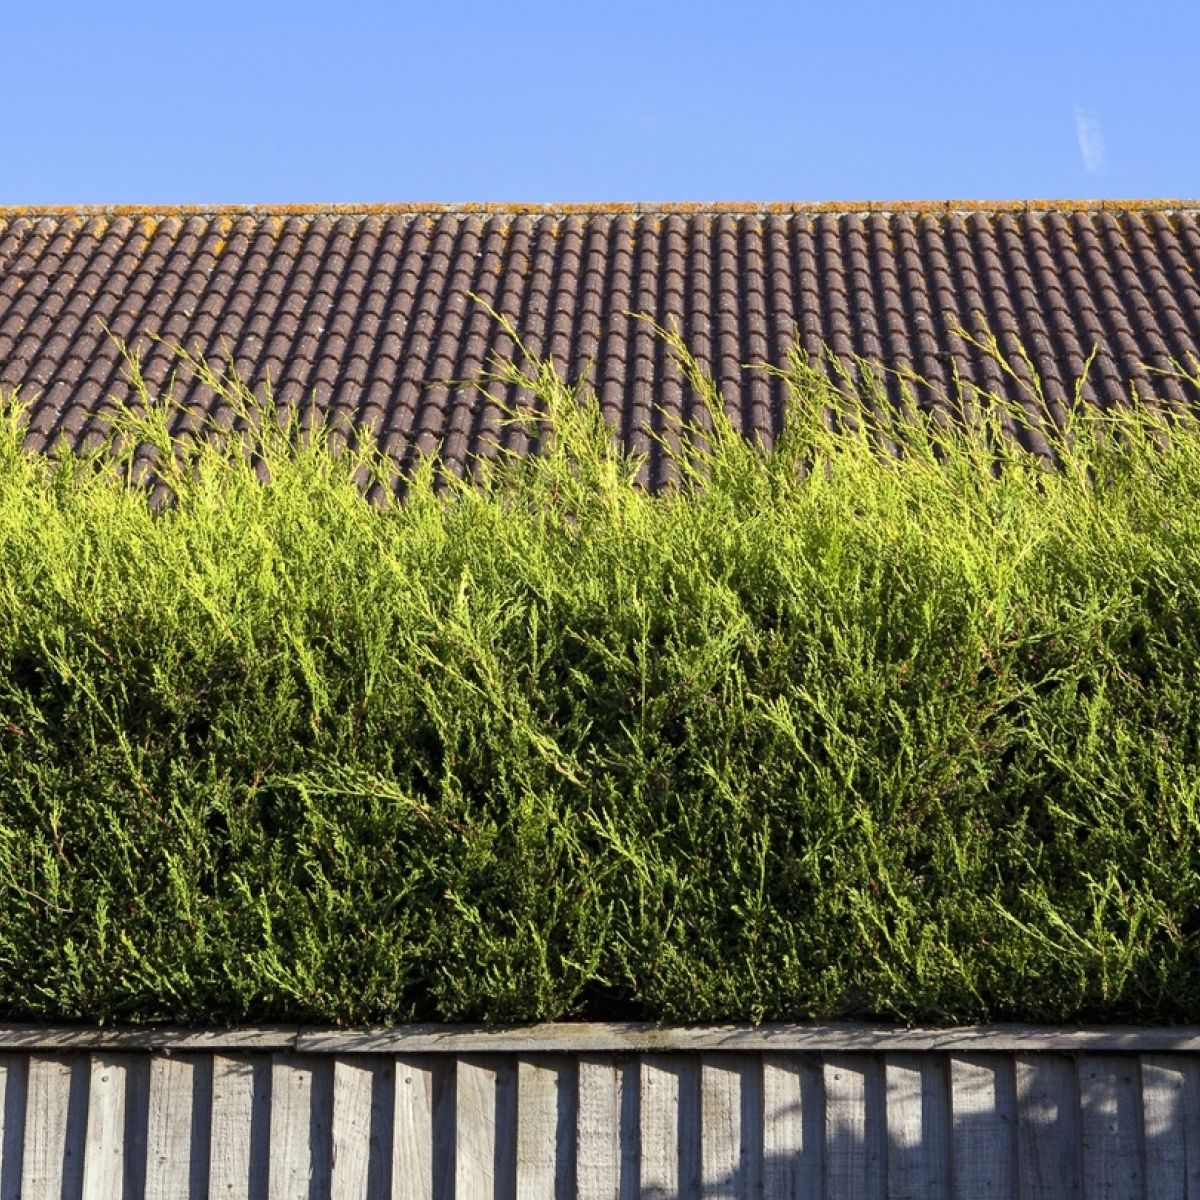 Give me shelter: how to grow a native Irish hedge